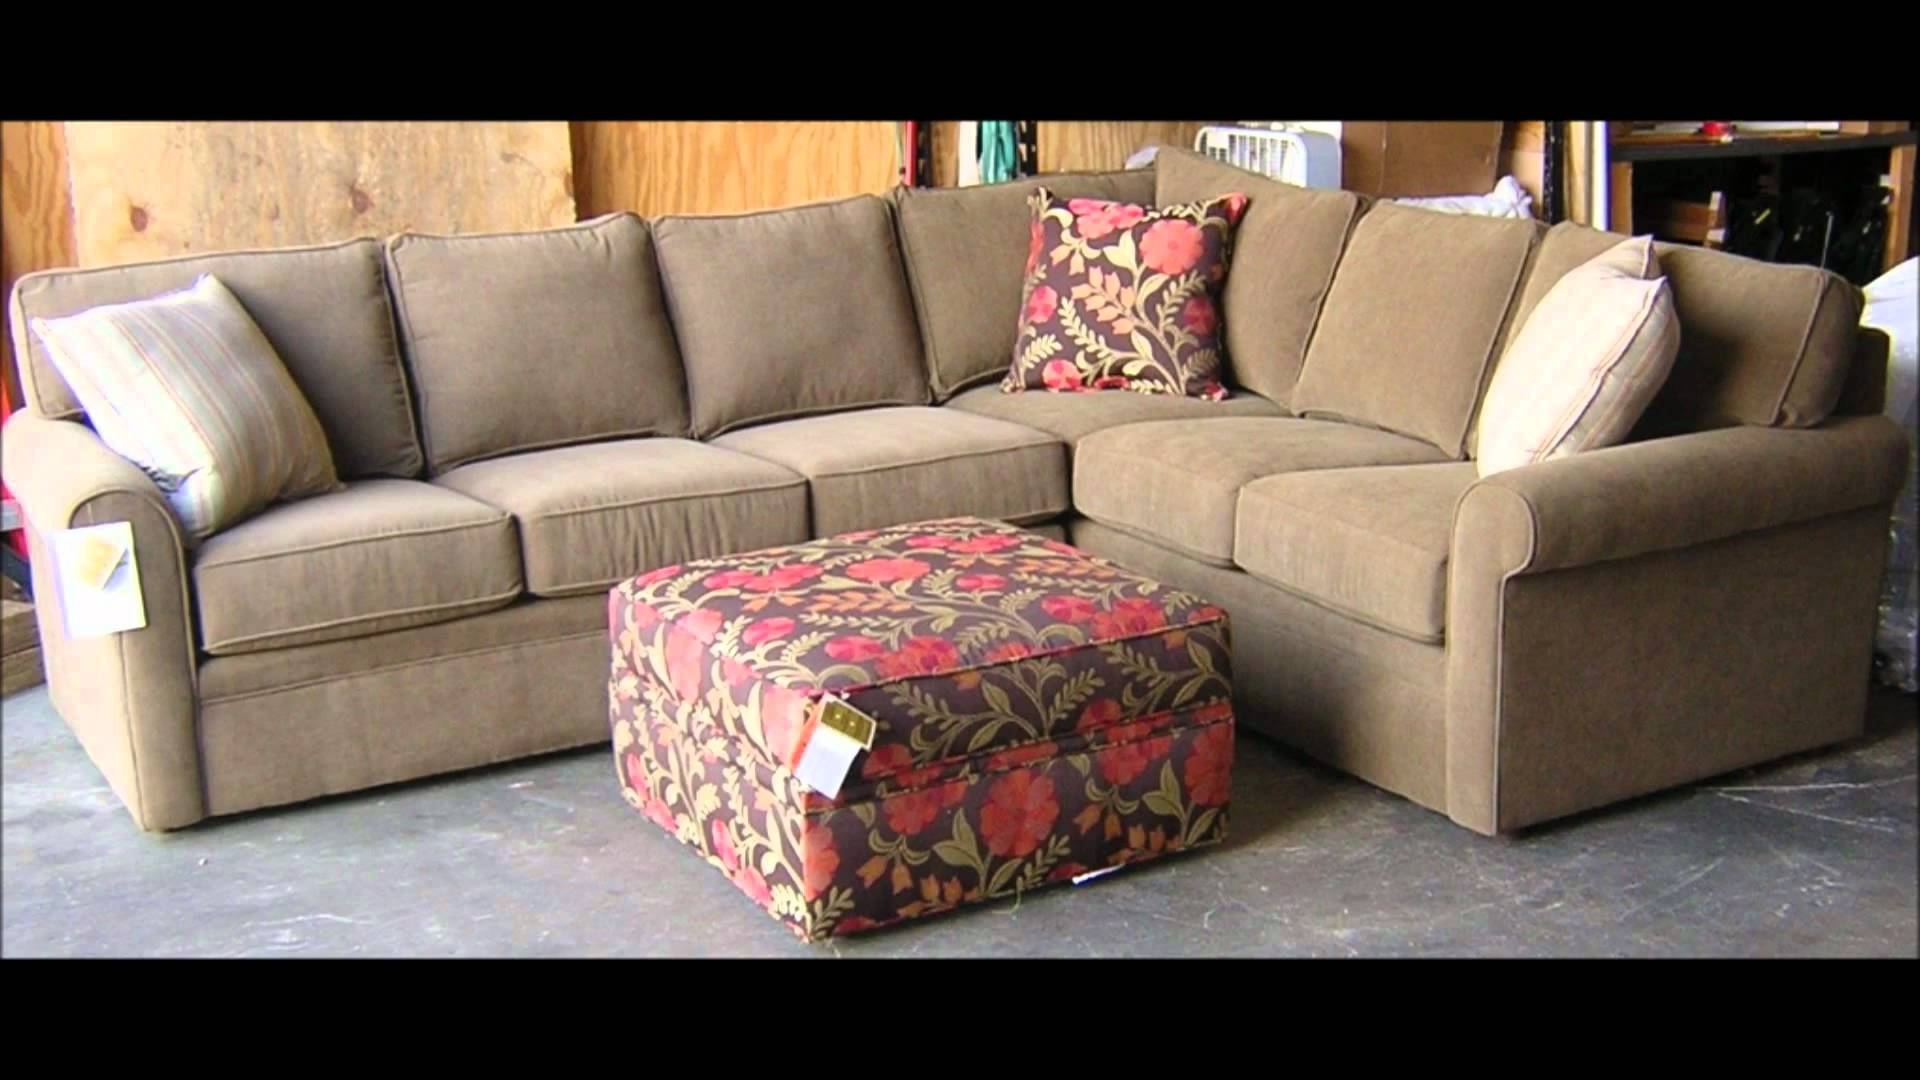 King Hickory Sofa Prices Regarding Hickory Nc Sectional Sofas (View 14 of 15)